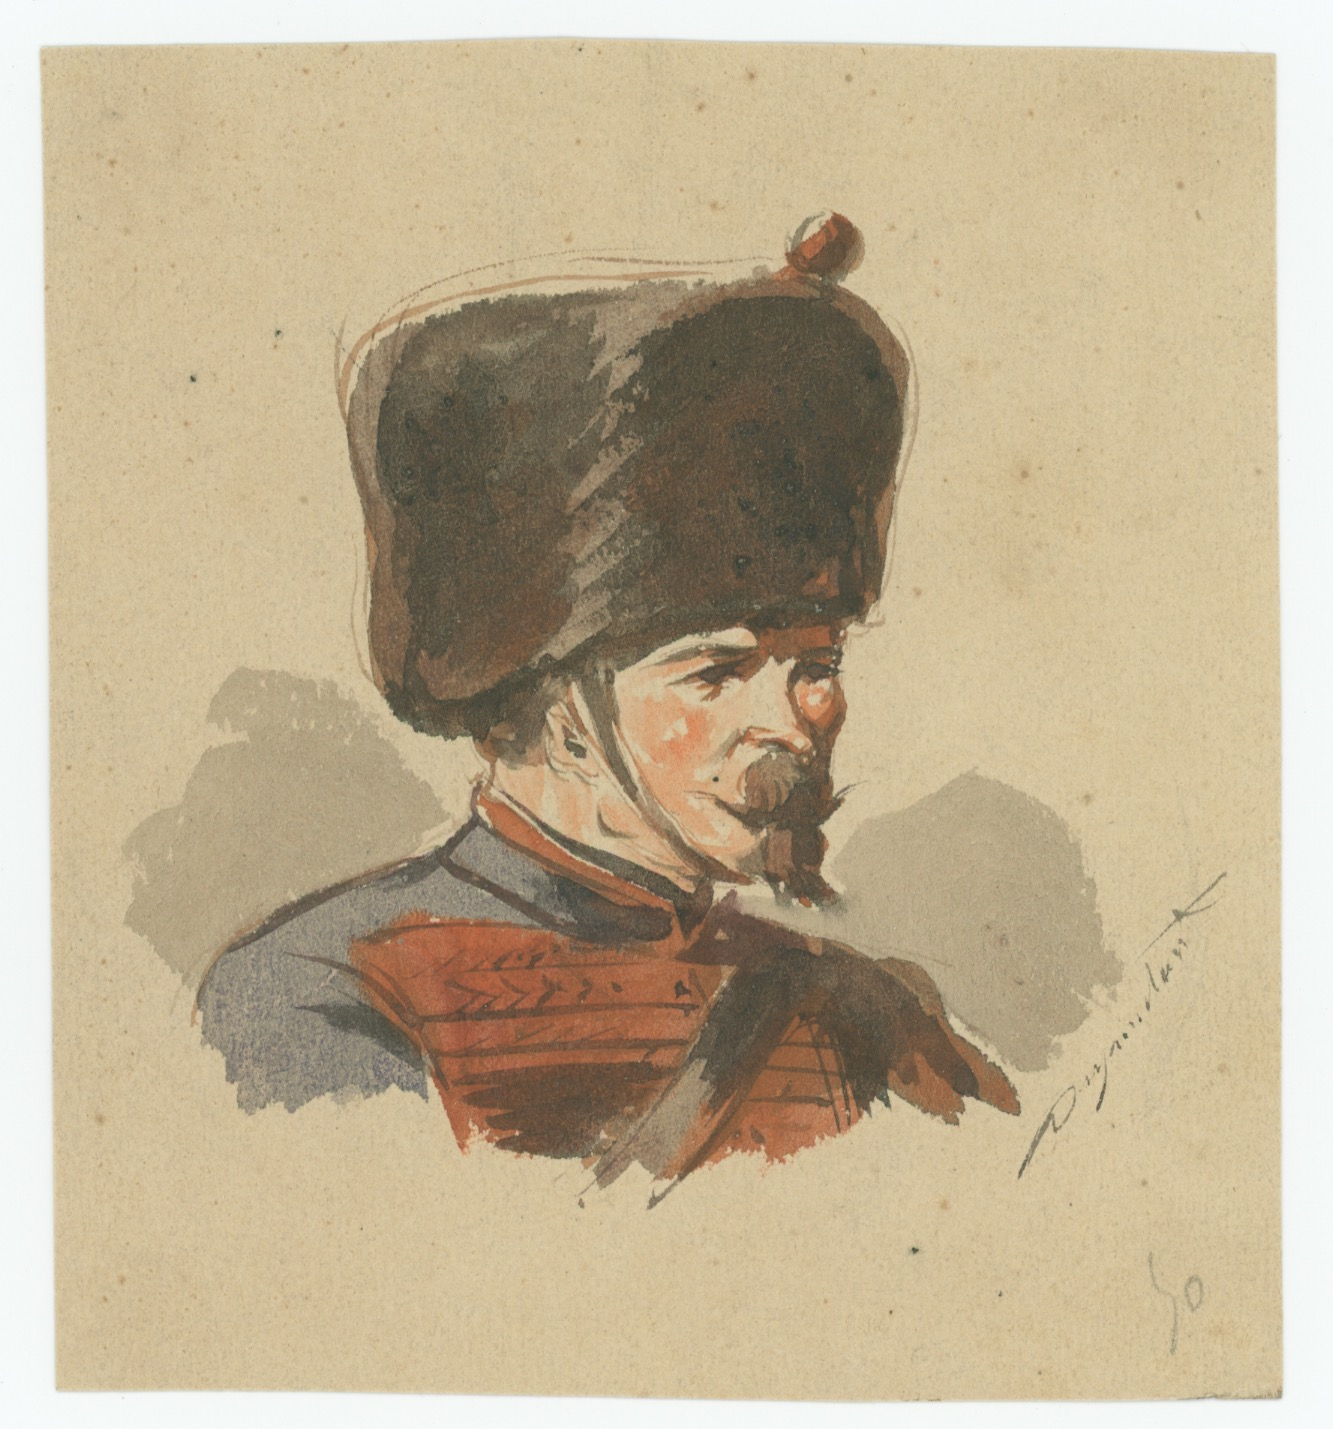 Dessin crayon rehaussé - Artillerie - Second Empire - Napoleon III - Uniforme - Aquarelle Originale 1870